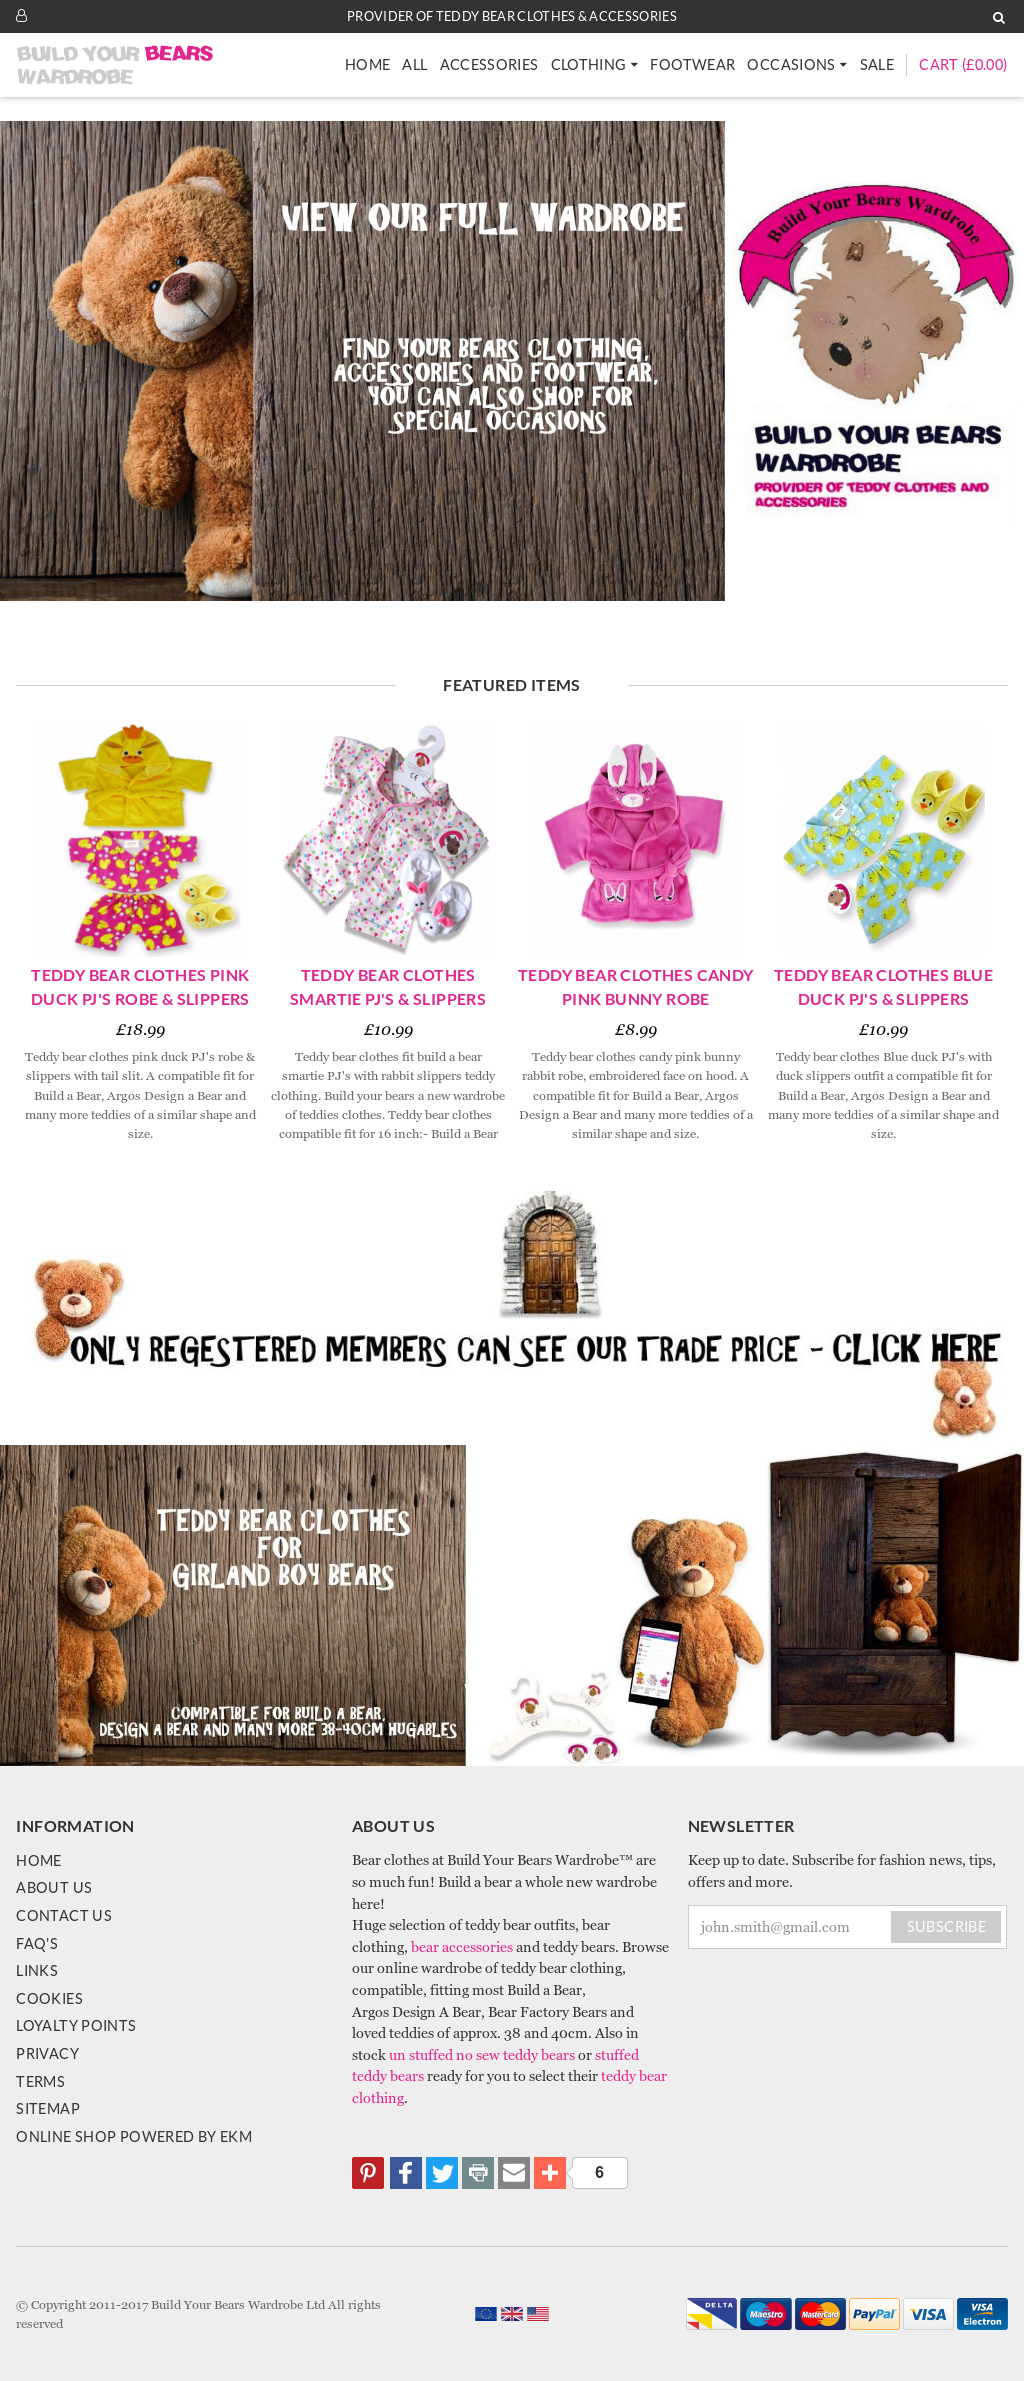 Build Your Bears Wardrobe Competitors, Revenue and Employees